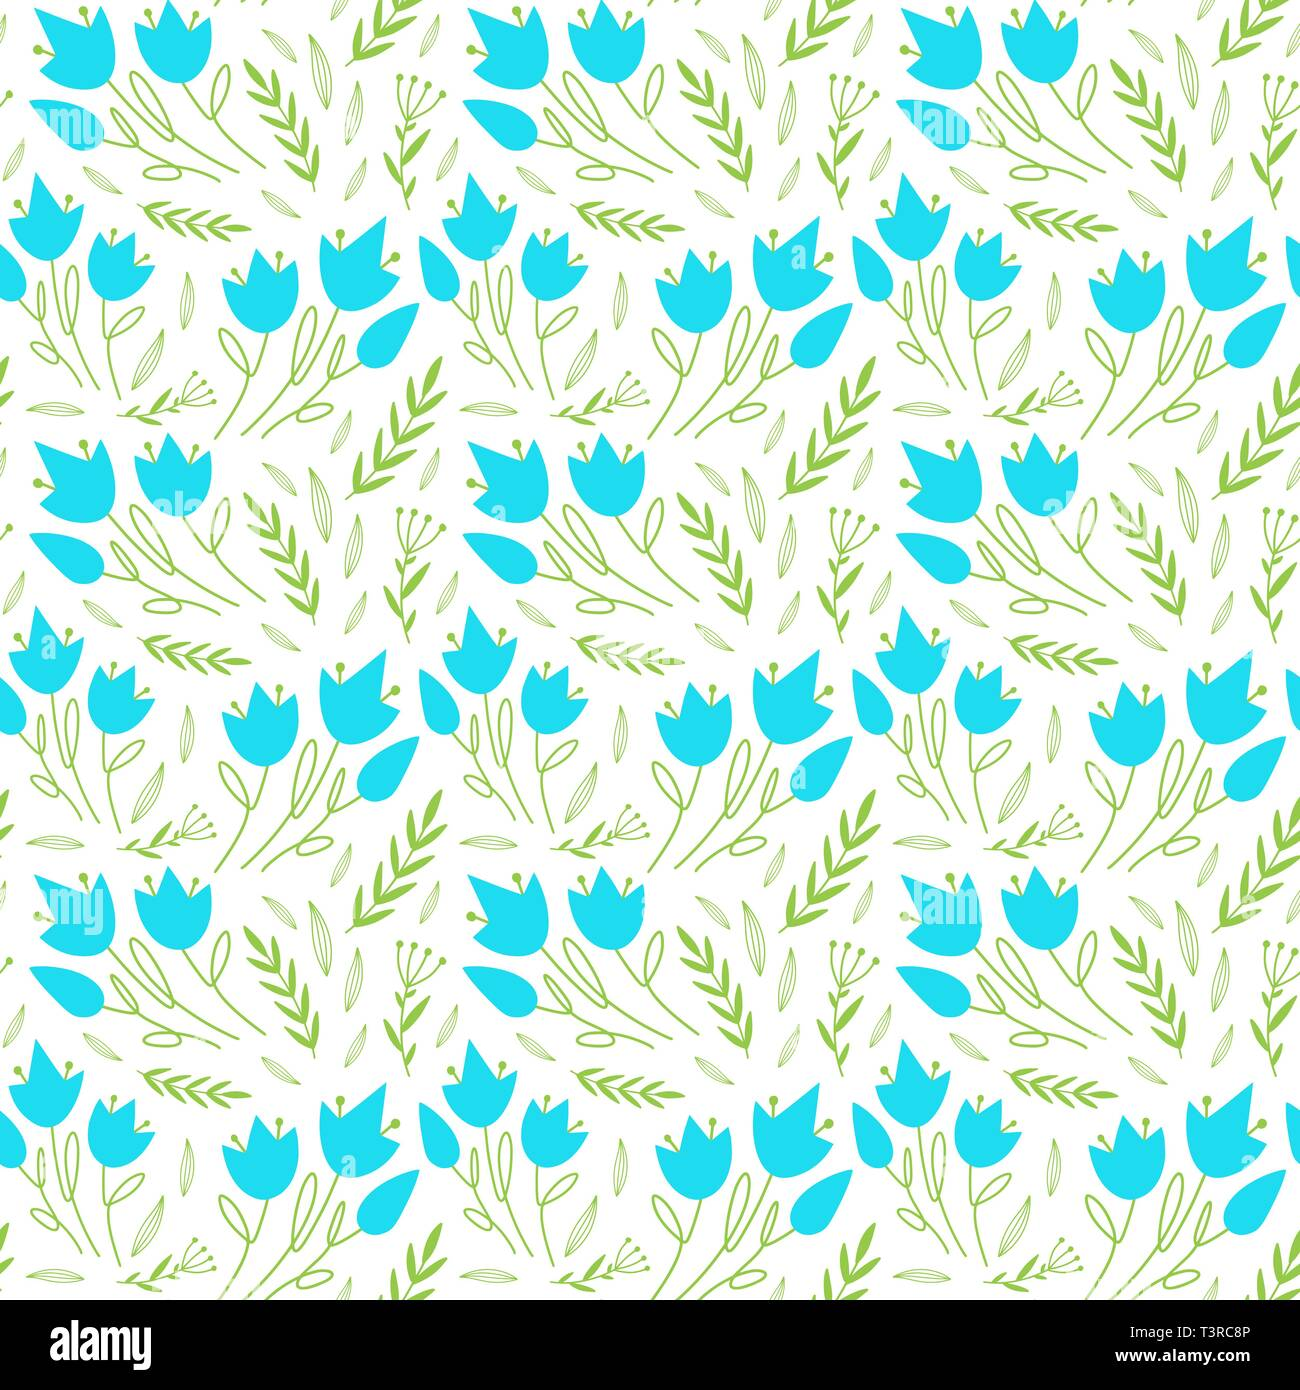 Simple Floral Pattern With Blue Flowers And Leaves Cute Floral Seamlesss Vector Repeat Patterns With Hand Drawn Flowers For Fashion Prints Stock Vector Image Art Alamy